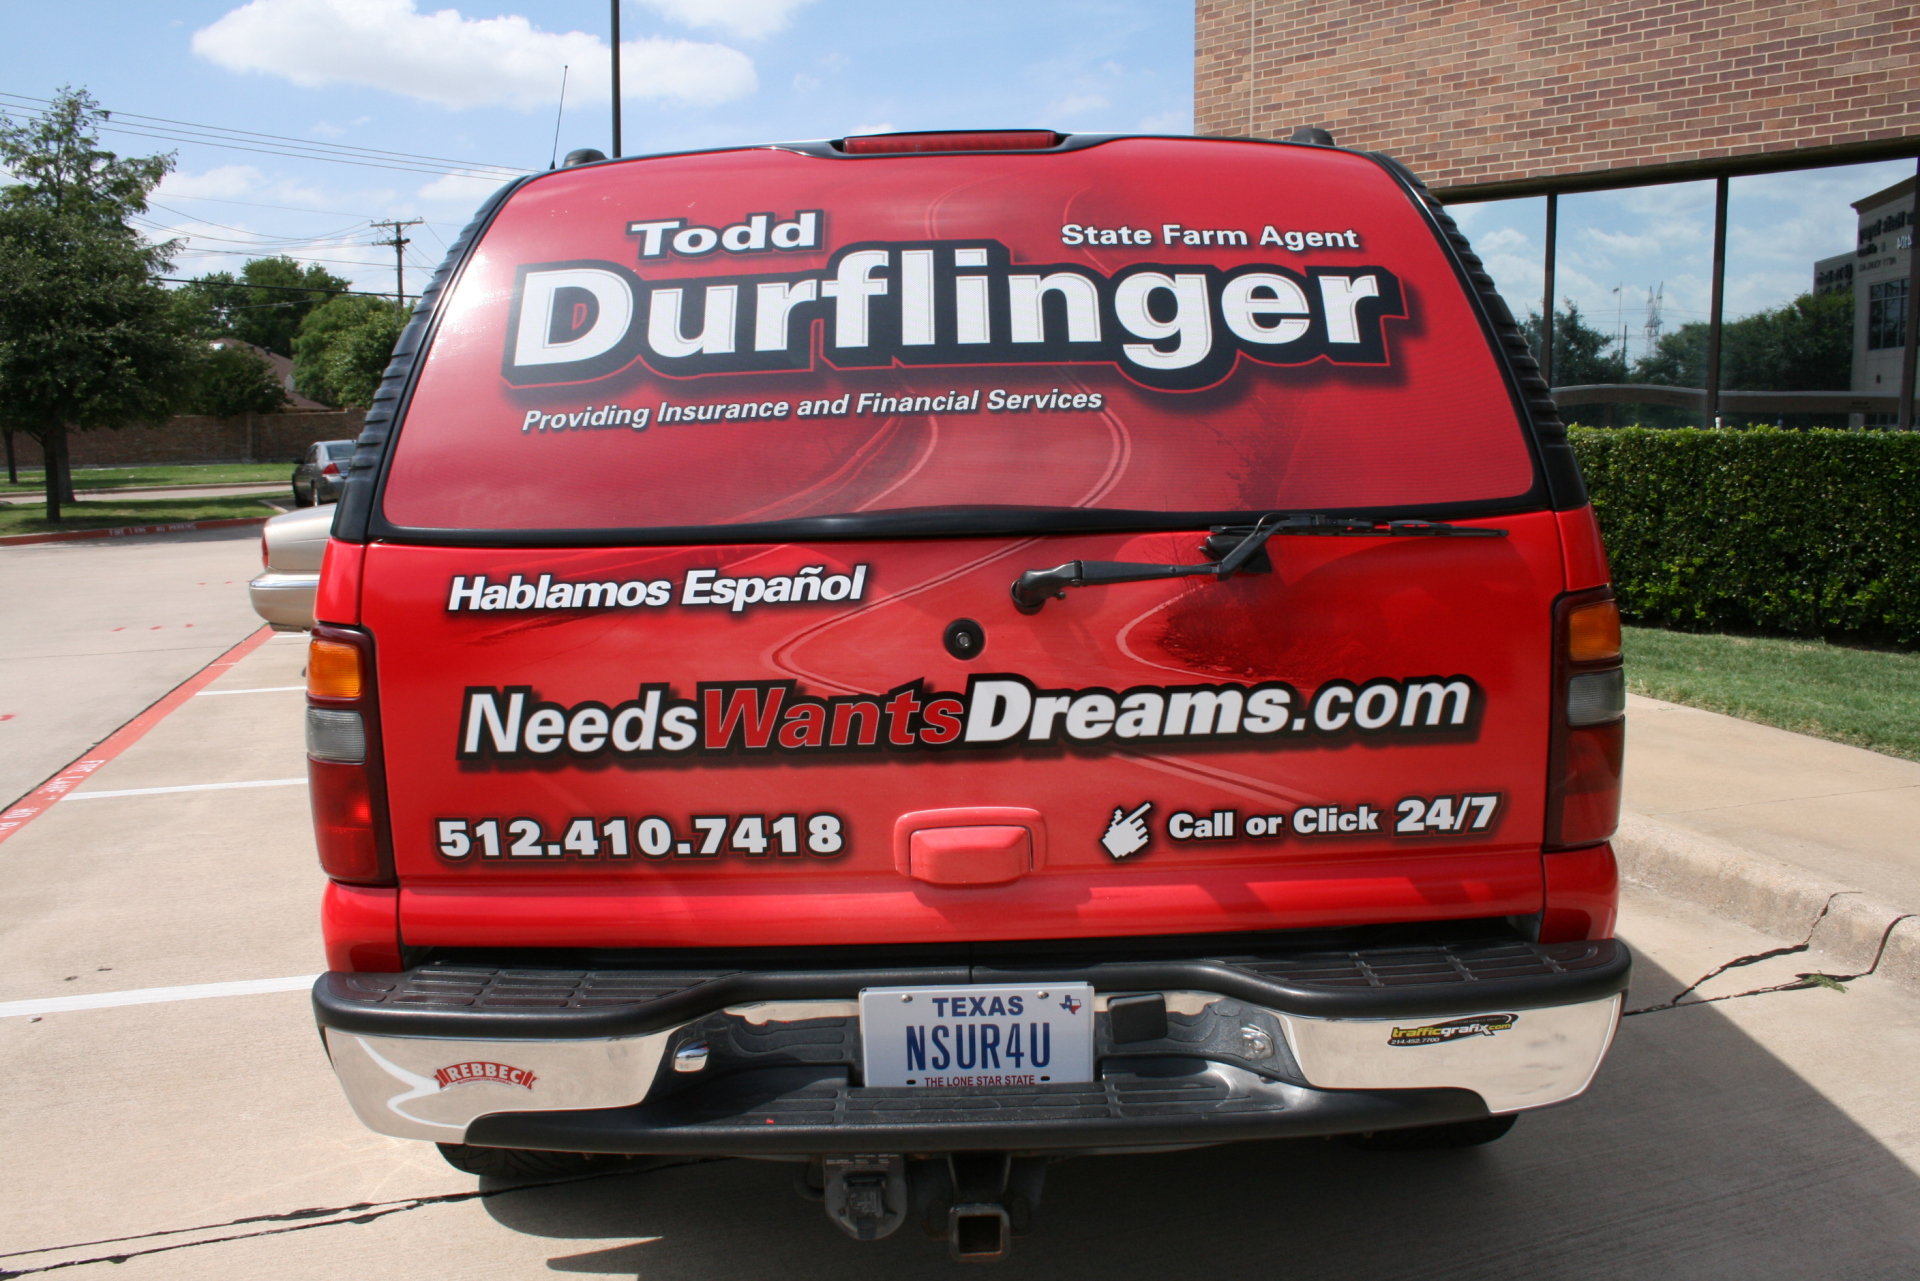 State Farm Agent Todd Durflinger, State Farm Vehicle Wraps, vehicle wraps dallas tx